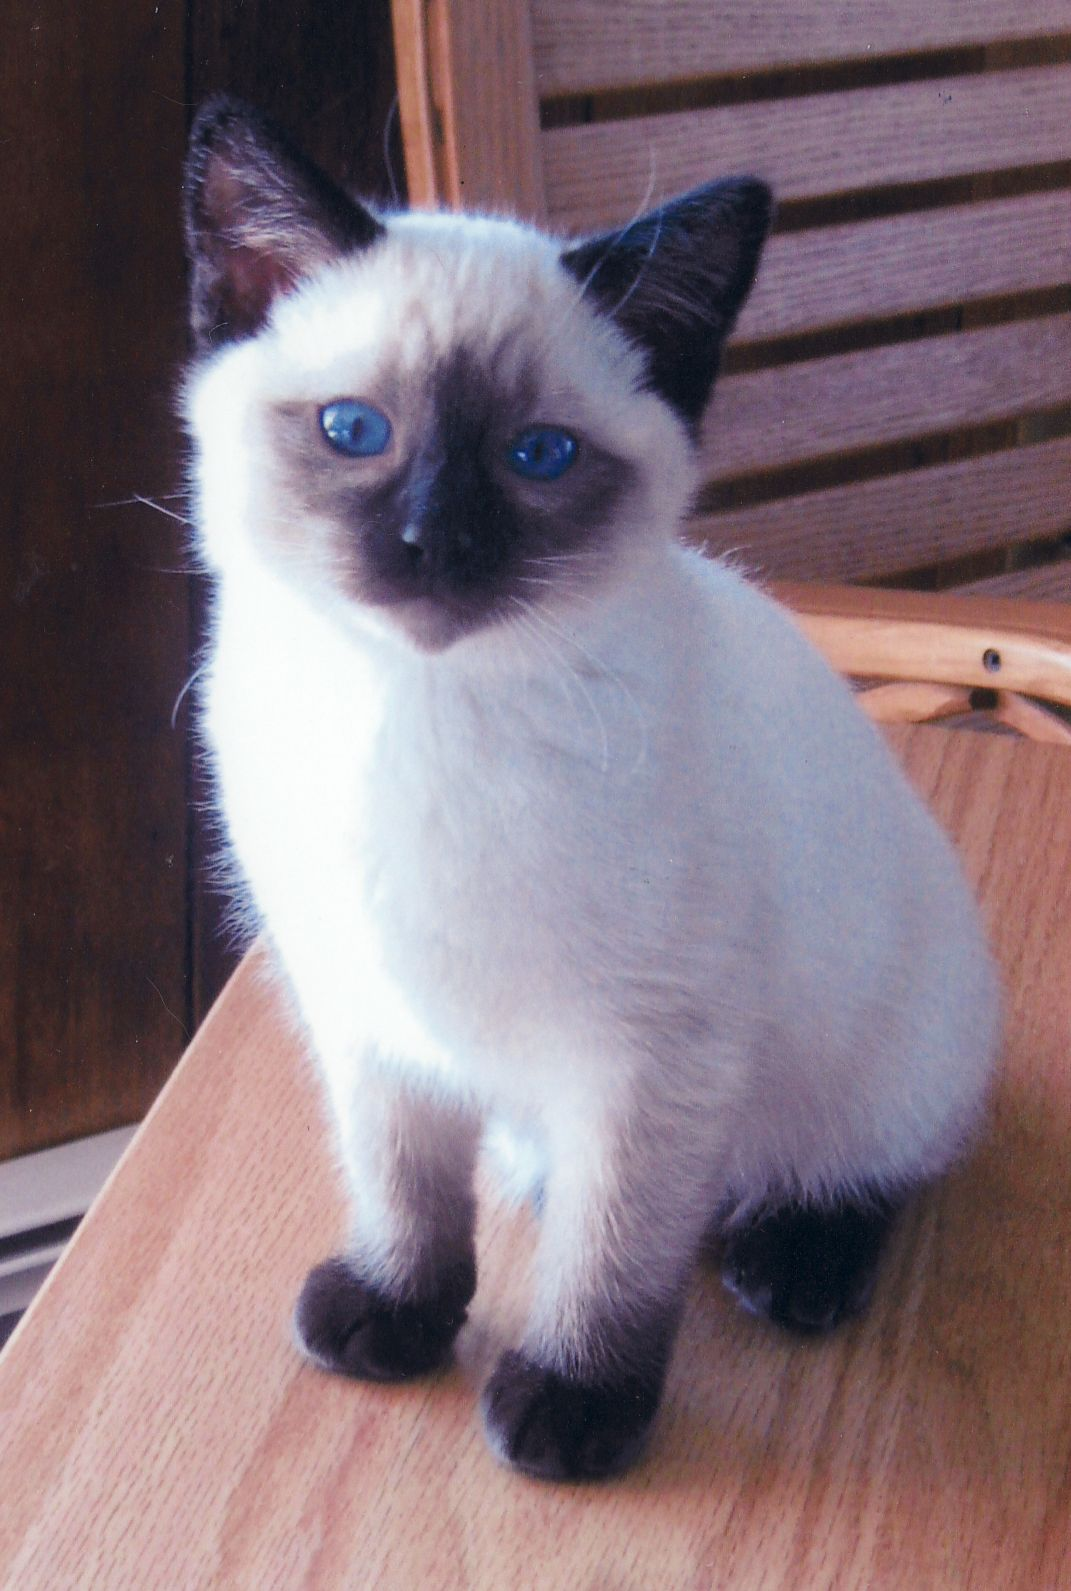 Balinese cat - reminds me of Daphne when she was a kitten | Cats ...